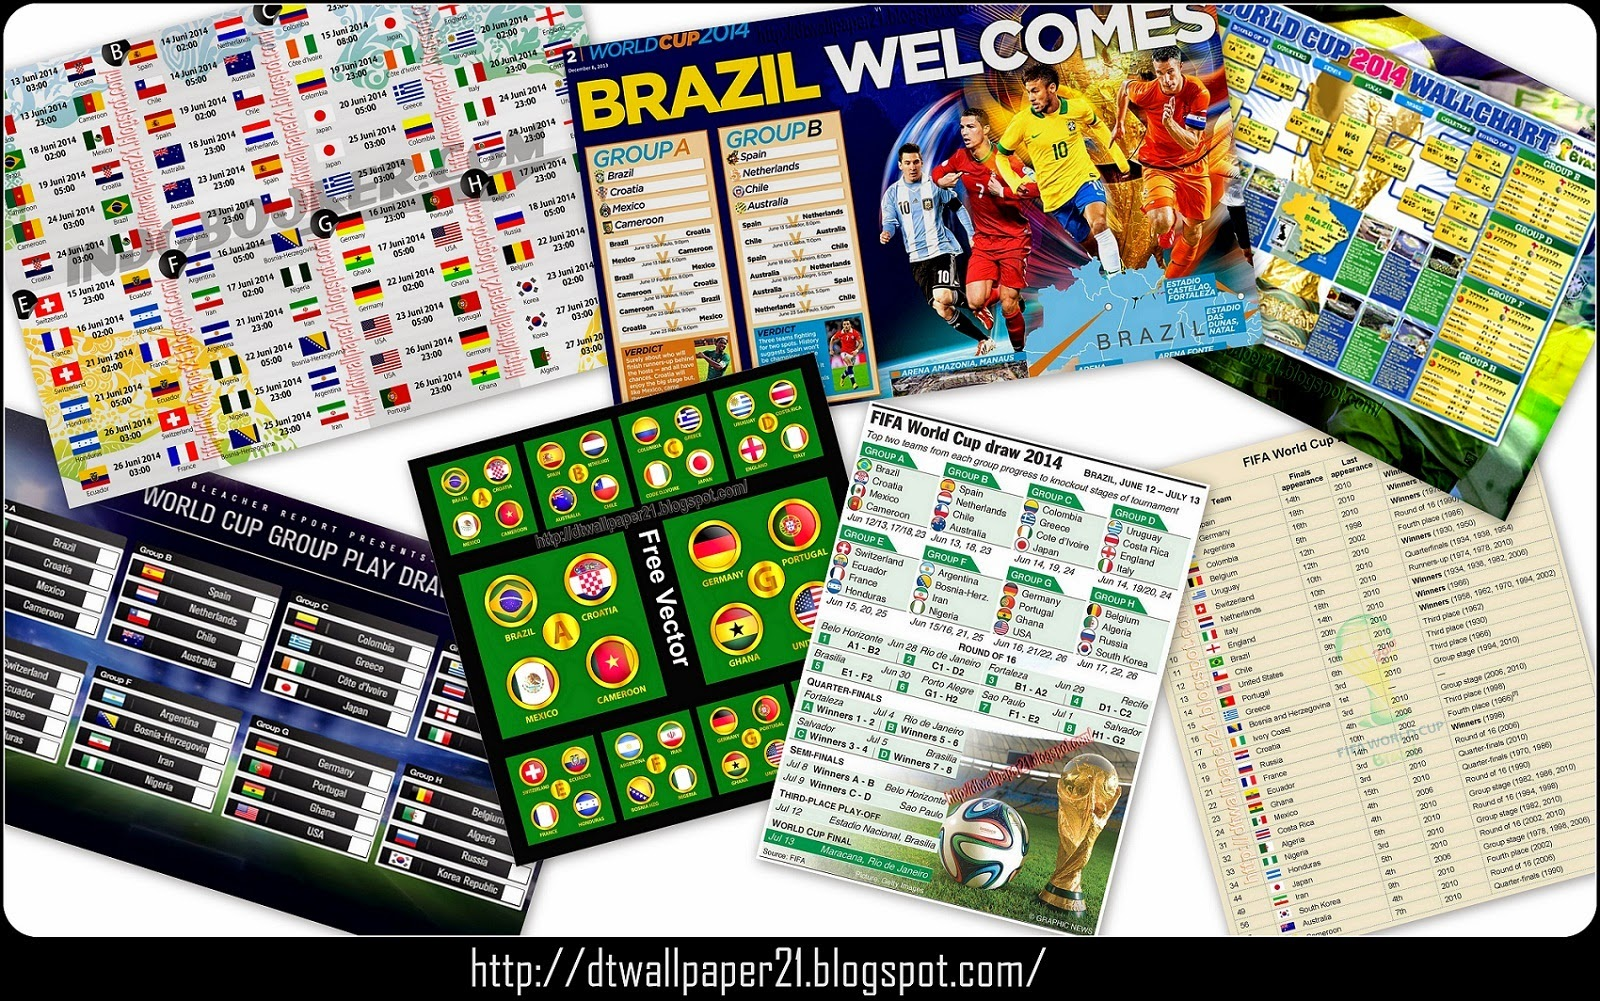 fifa, fifa world cup schedule, football, football games, others, world cup, world cup 2014 schedule, world cup schedule,